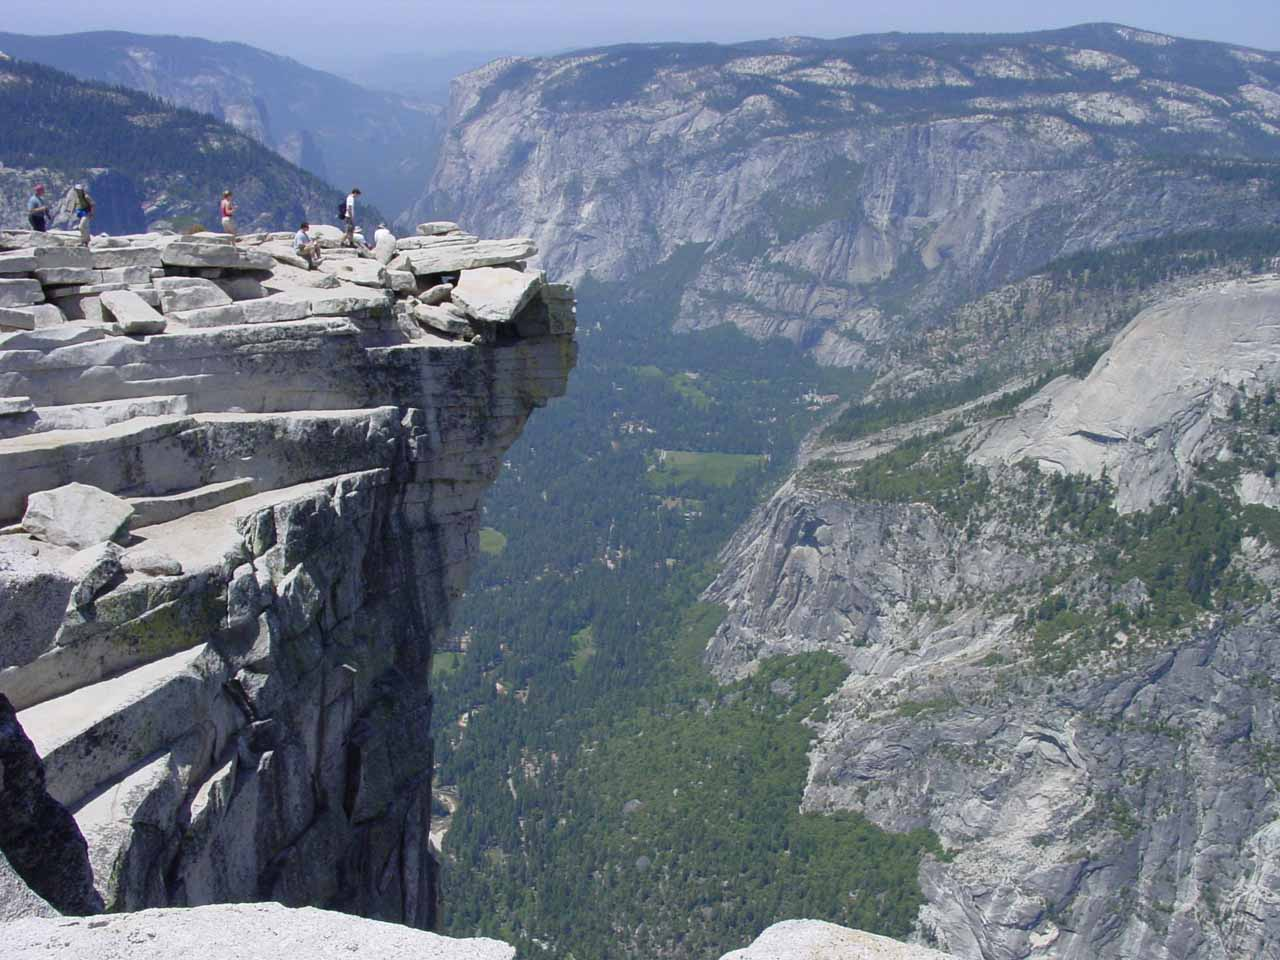 The Diving Board atop Half Dome, which was one of the quirky landmarks there. Near this spot was where it was possible to fight stomach butterflies and peer down at Snow Creek Falls